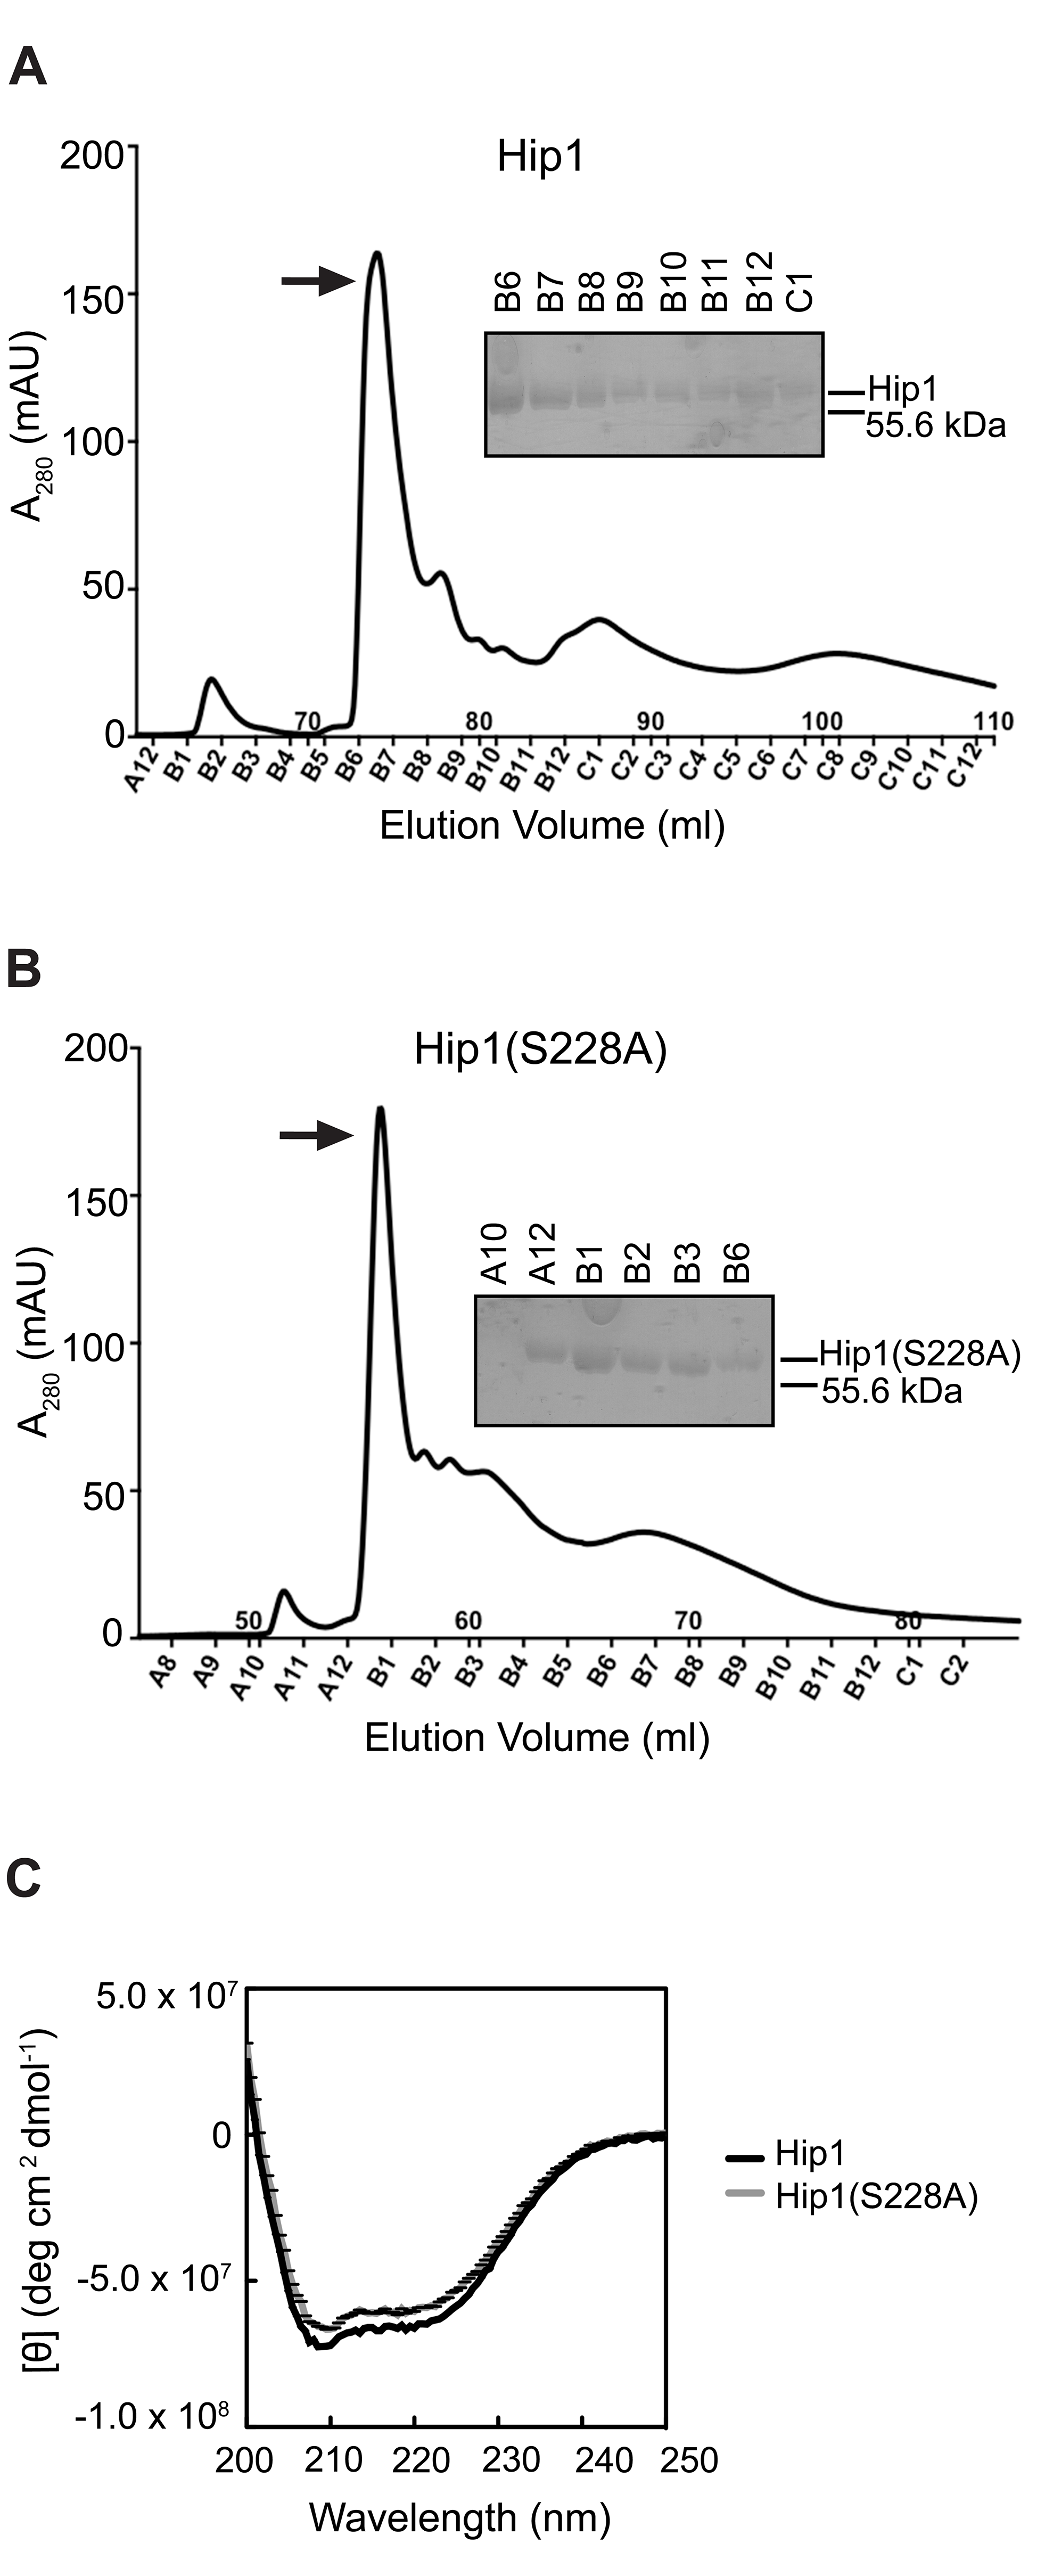 Purification of Hip1 and Hip1(S228A) by ion exchange chromatography.